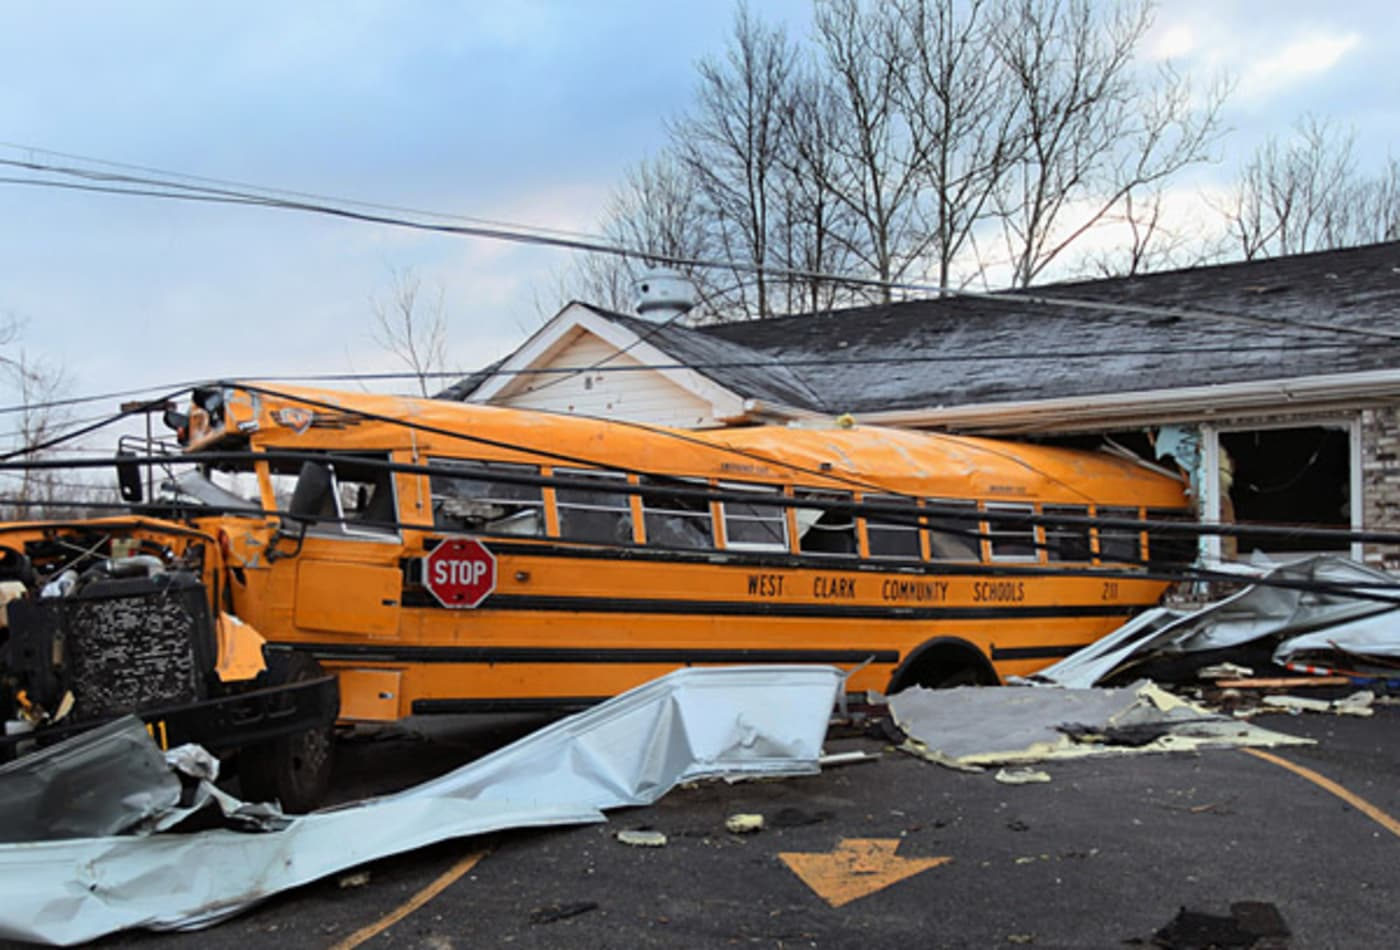 scenes-from-the-midwest-tornadoes-school-bus.jpg